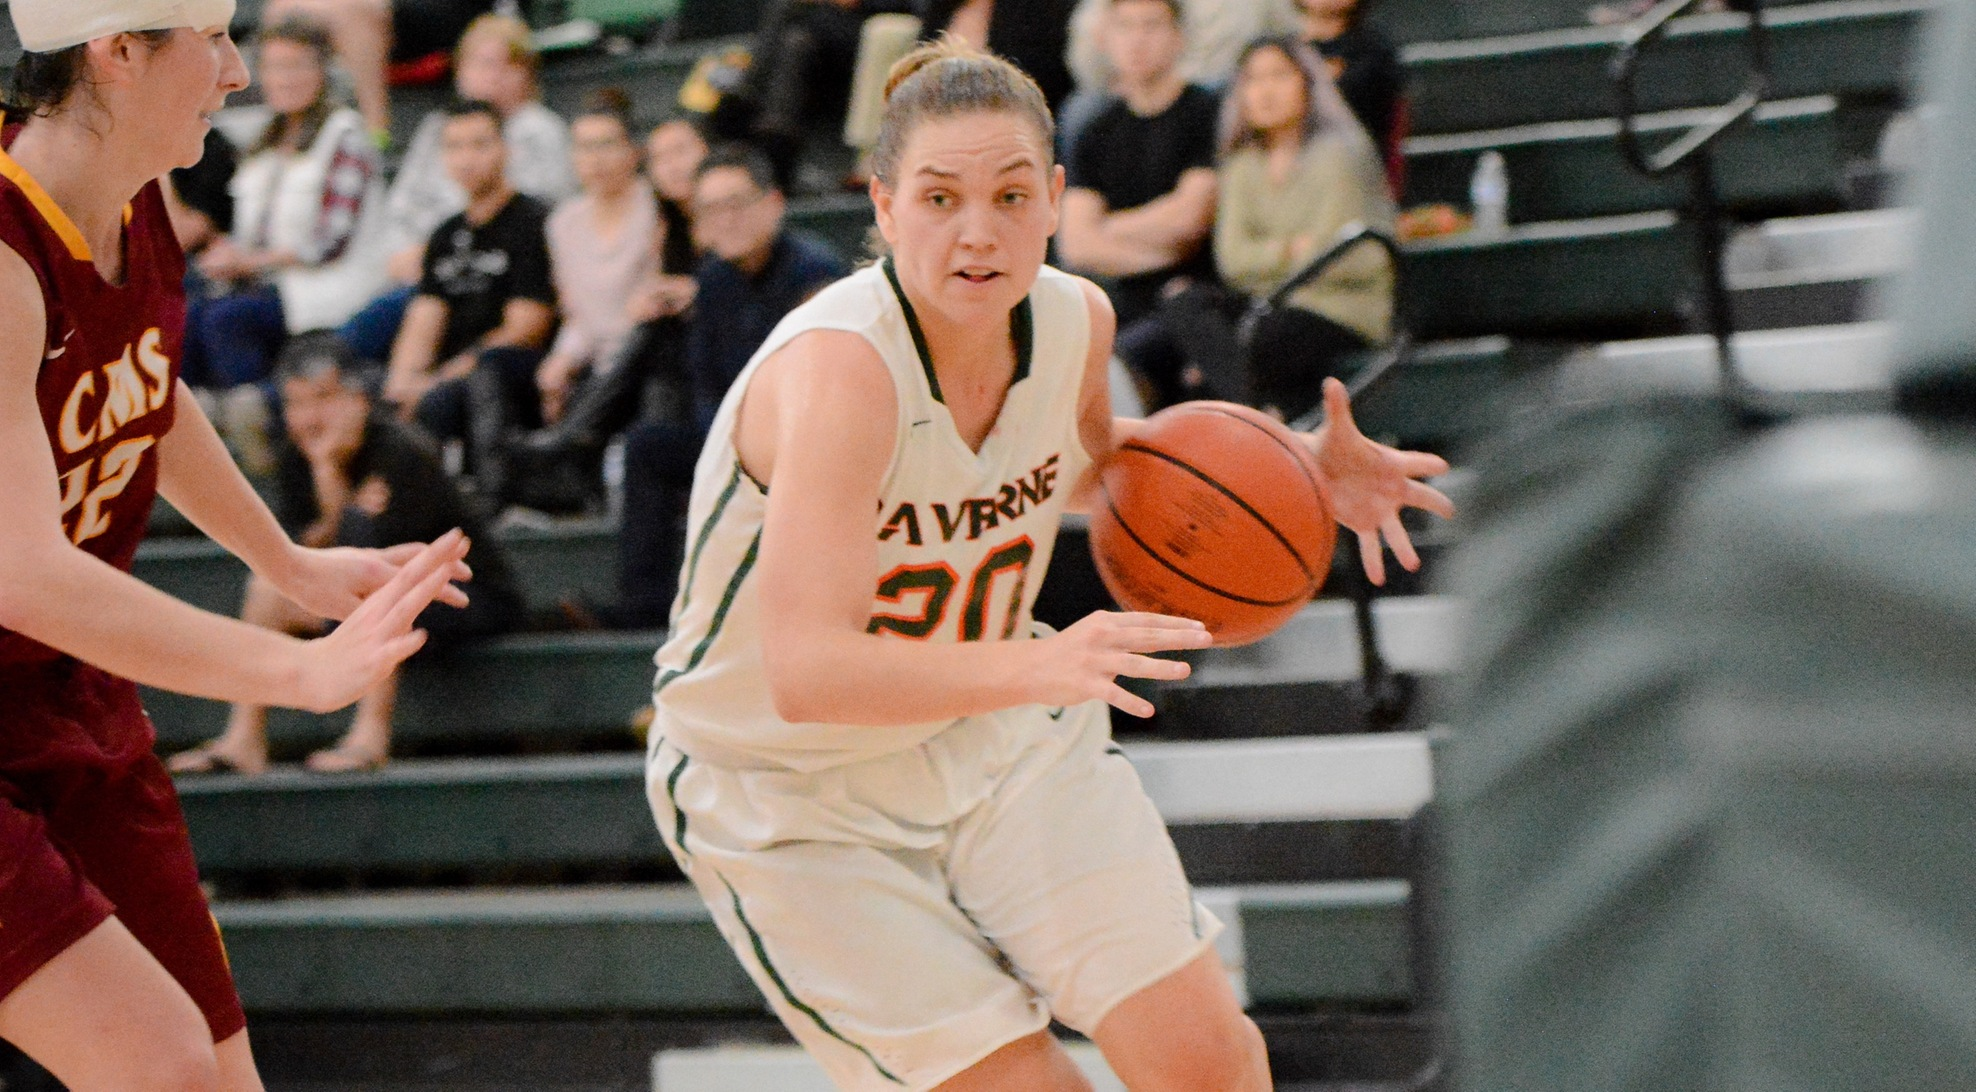 Women's Basketball falls to Claremont-Mudd-Scripps, 65-50